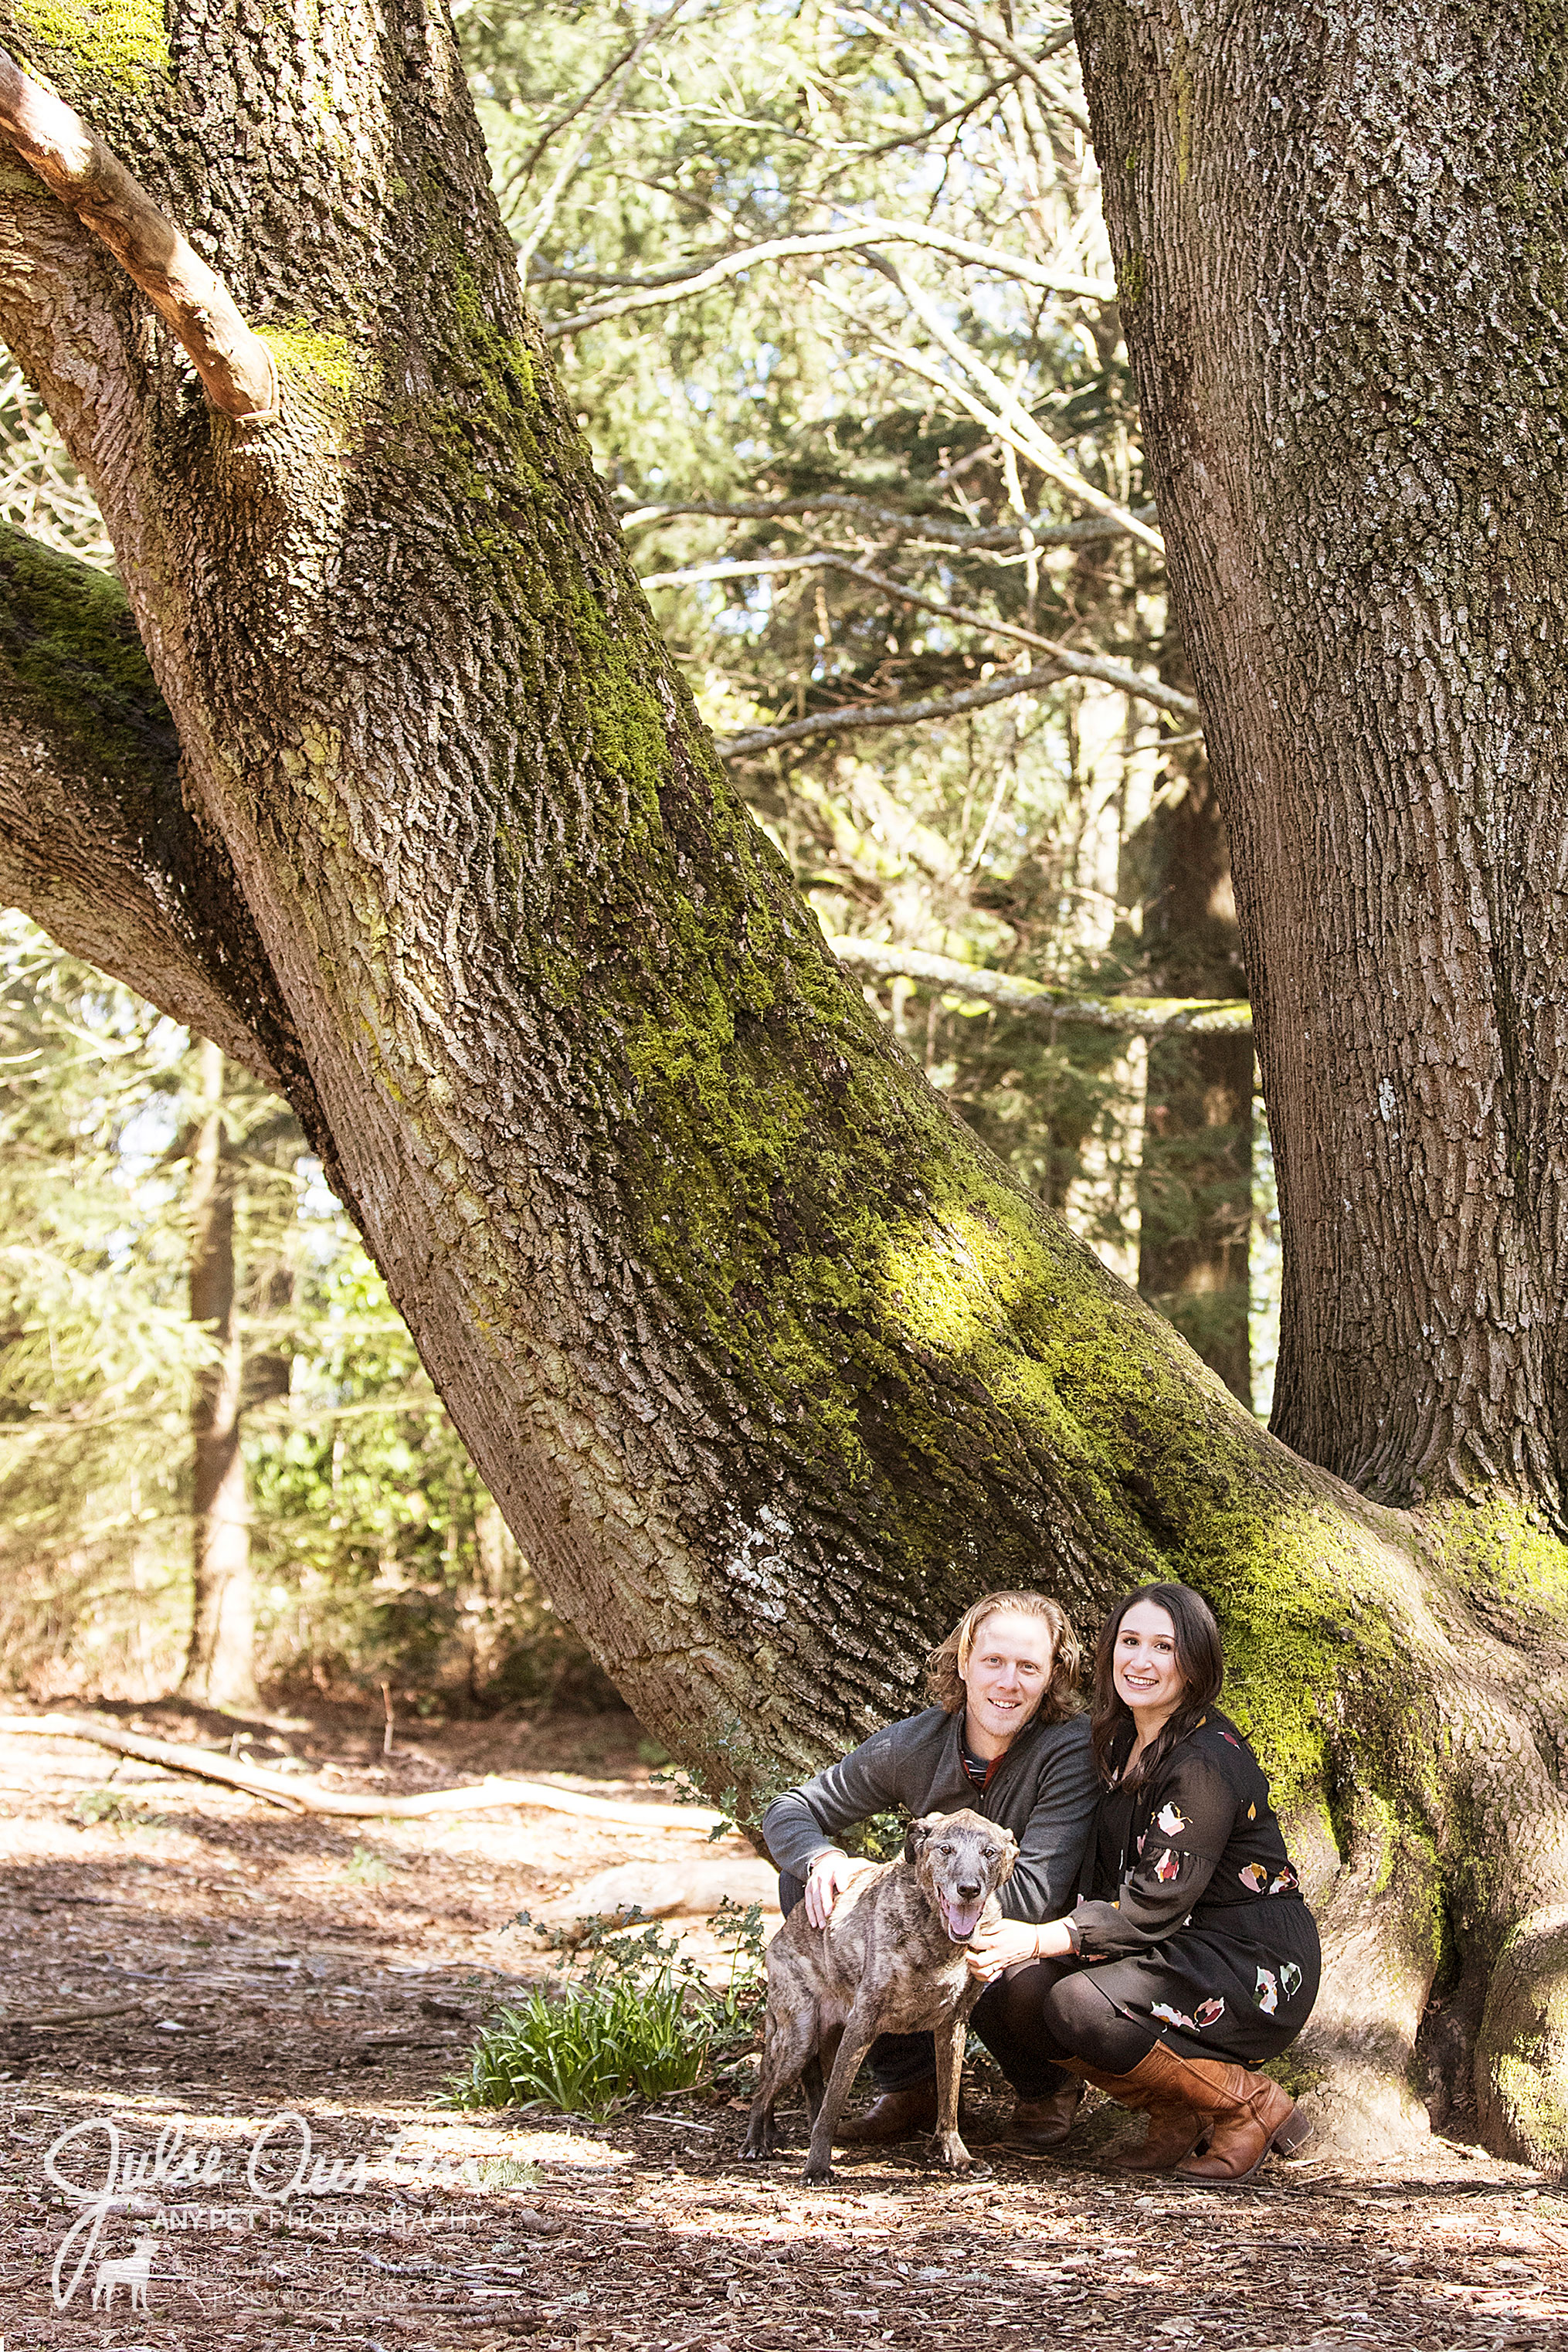 Ryan, Danielle, and Dakota looking great under one of the many amazing trees at Discovery Park.